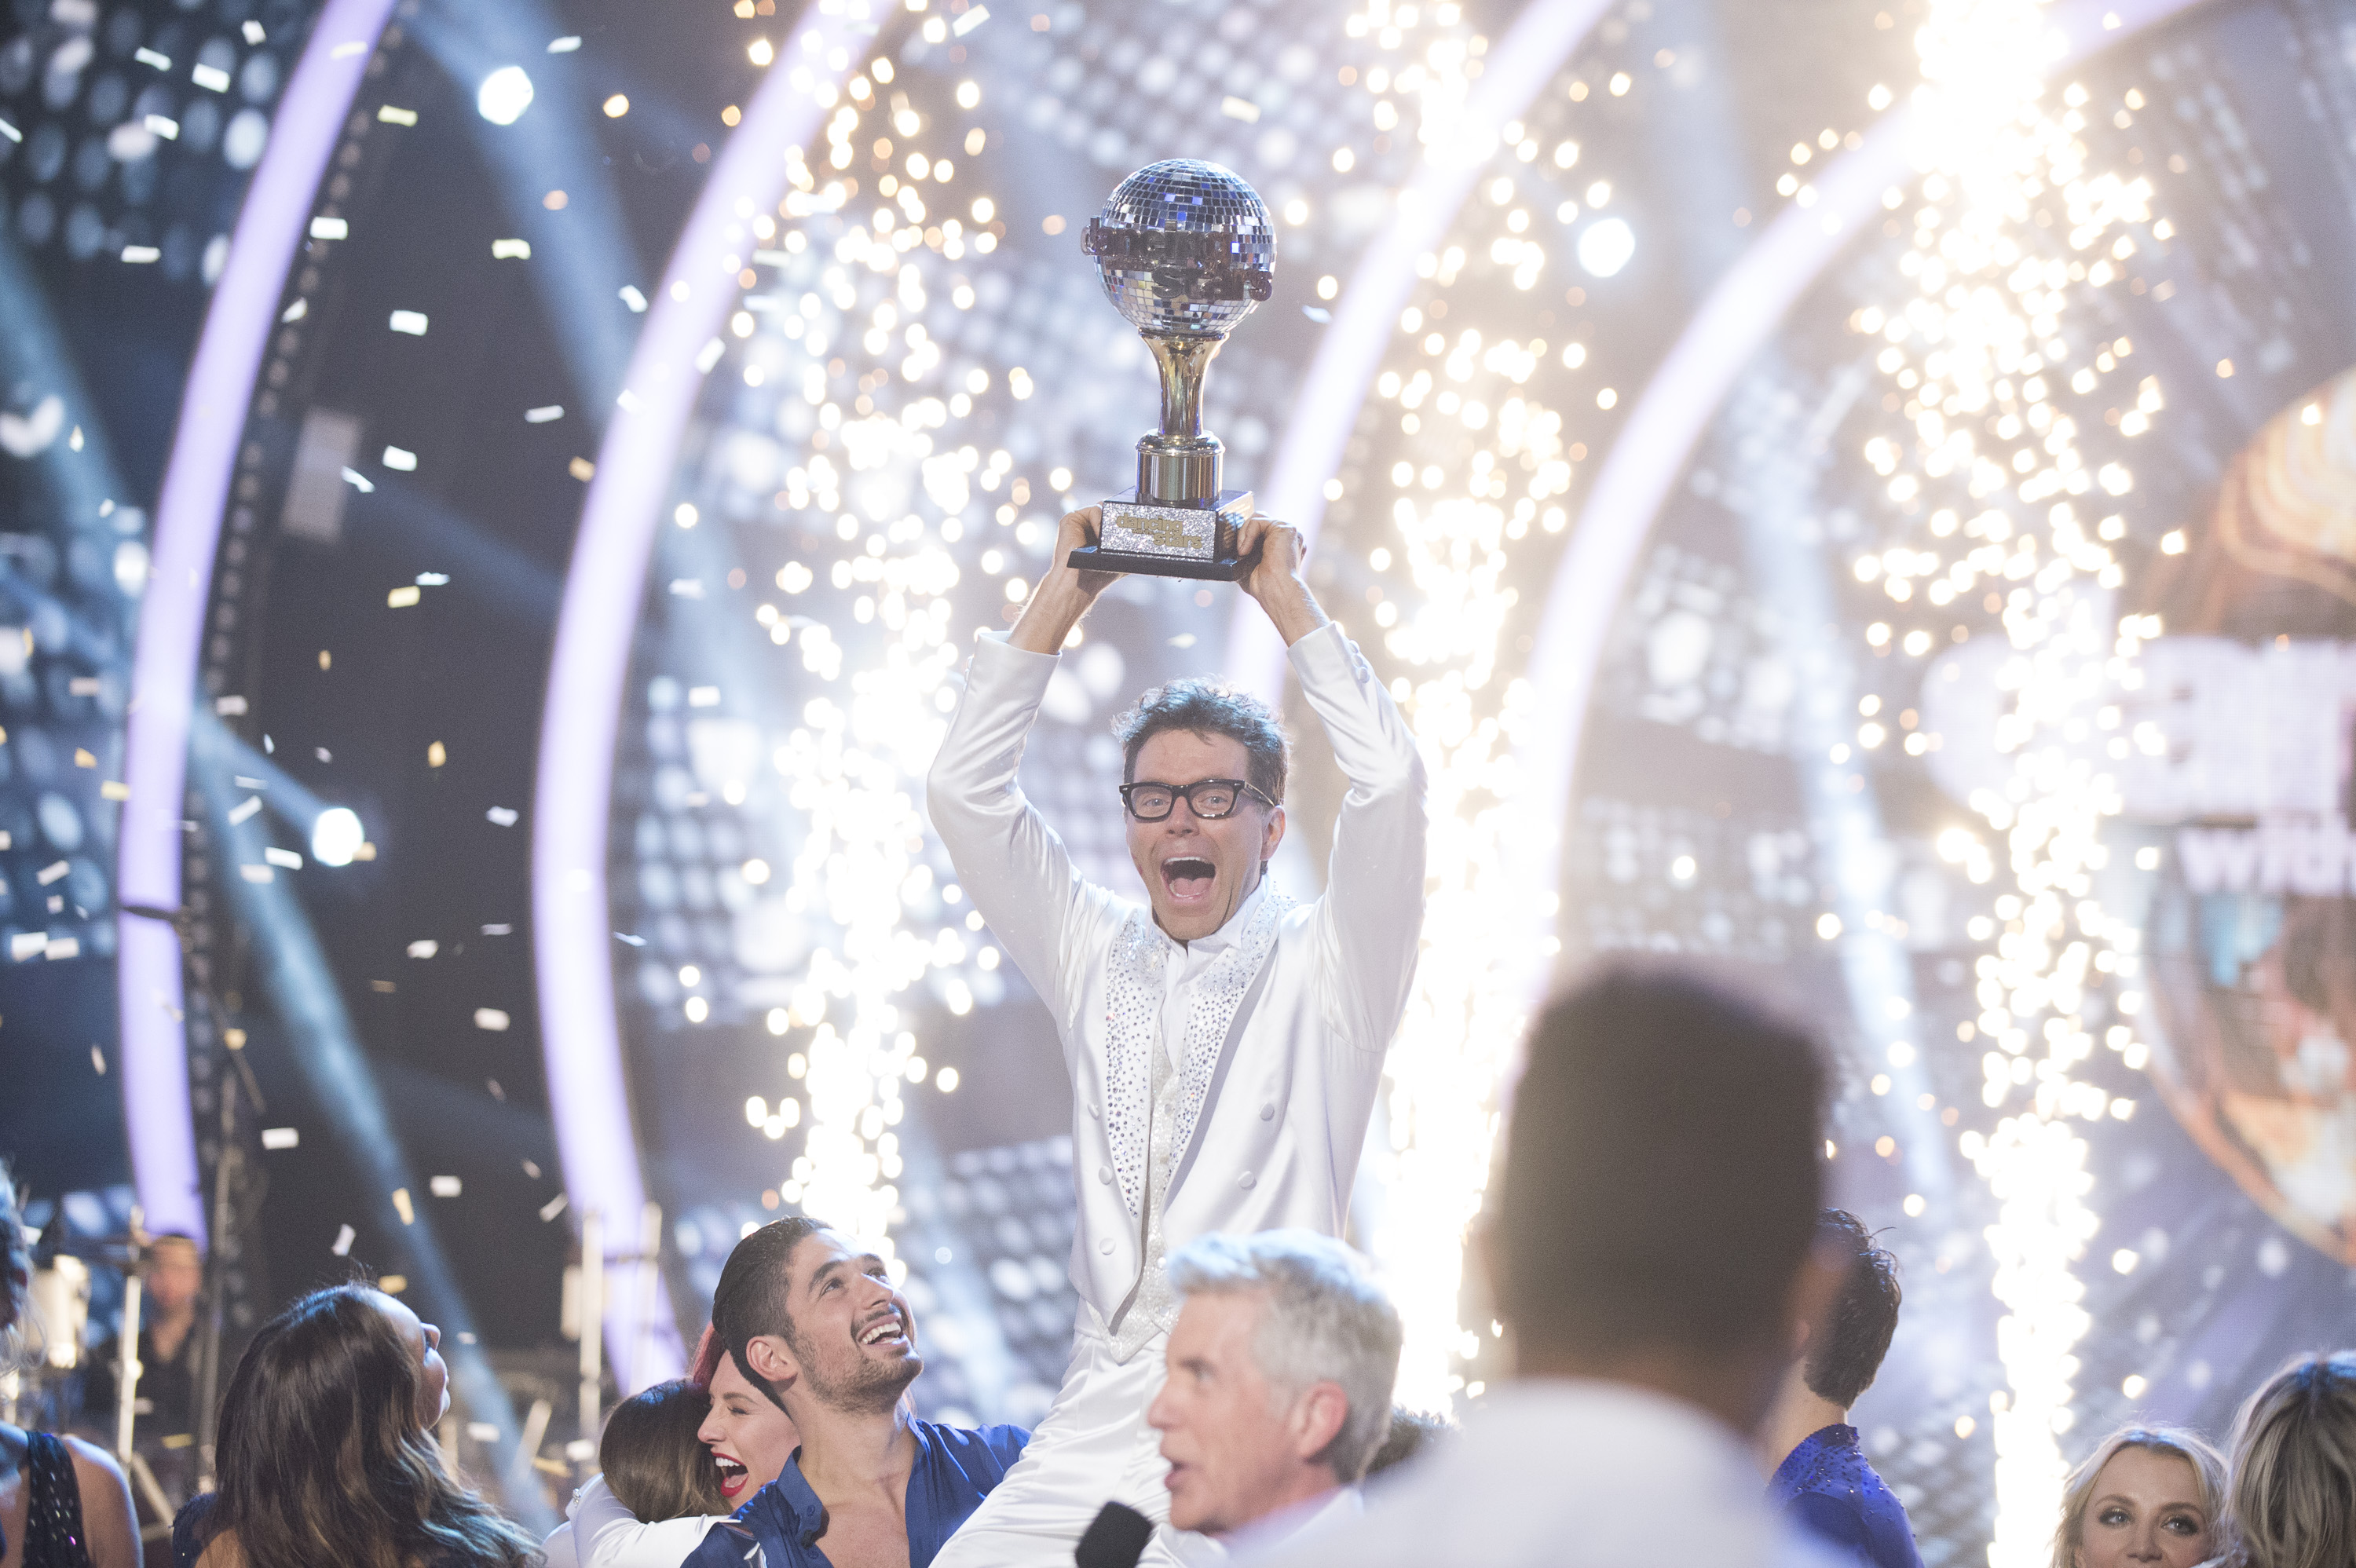 Image of Bobby Bones winner Dancing with The Stars